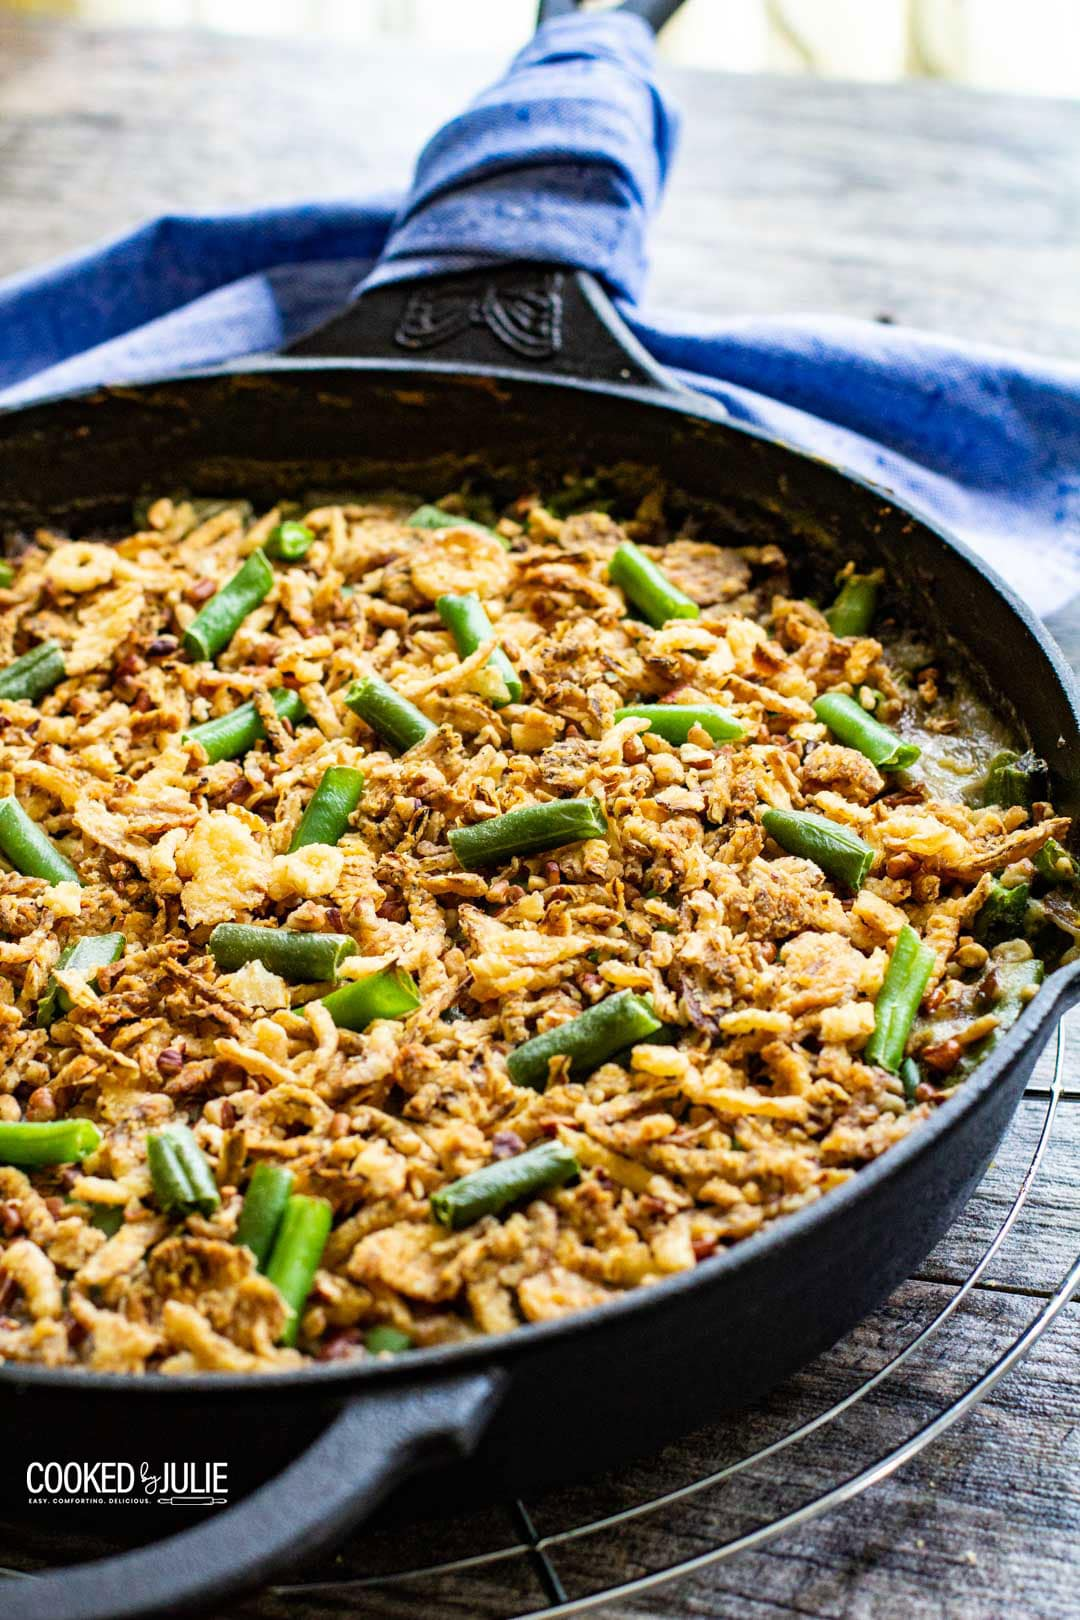 green bean casserole in an iron skillet with a blue towel